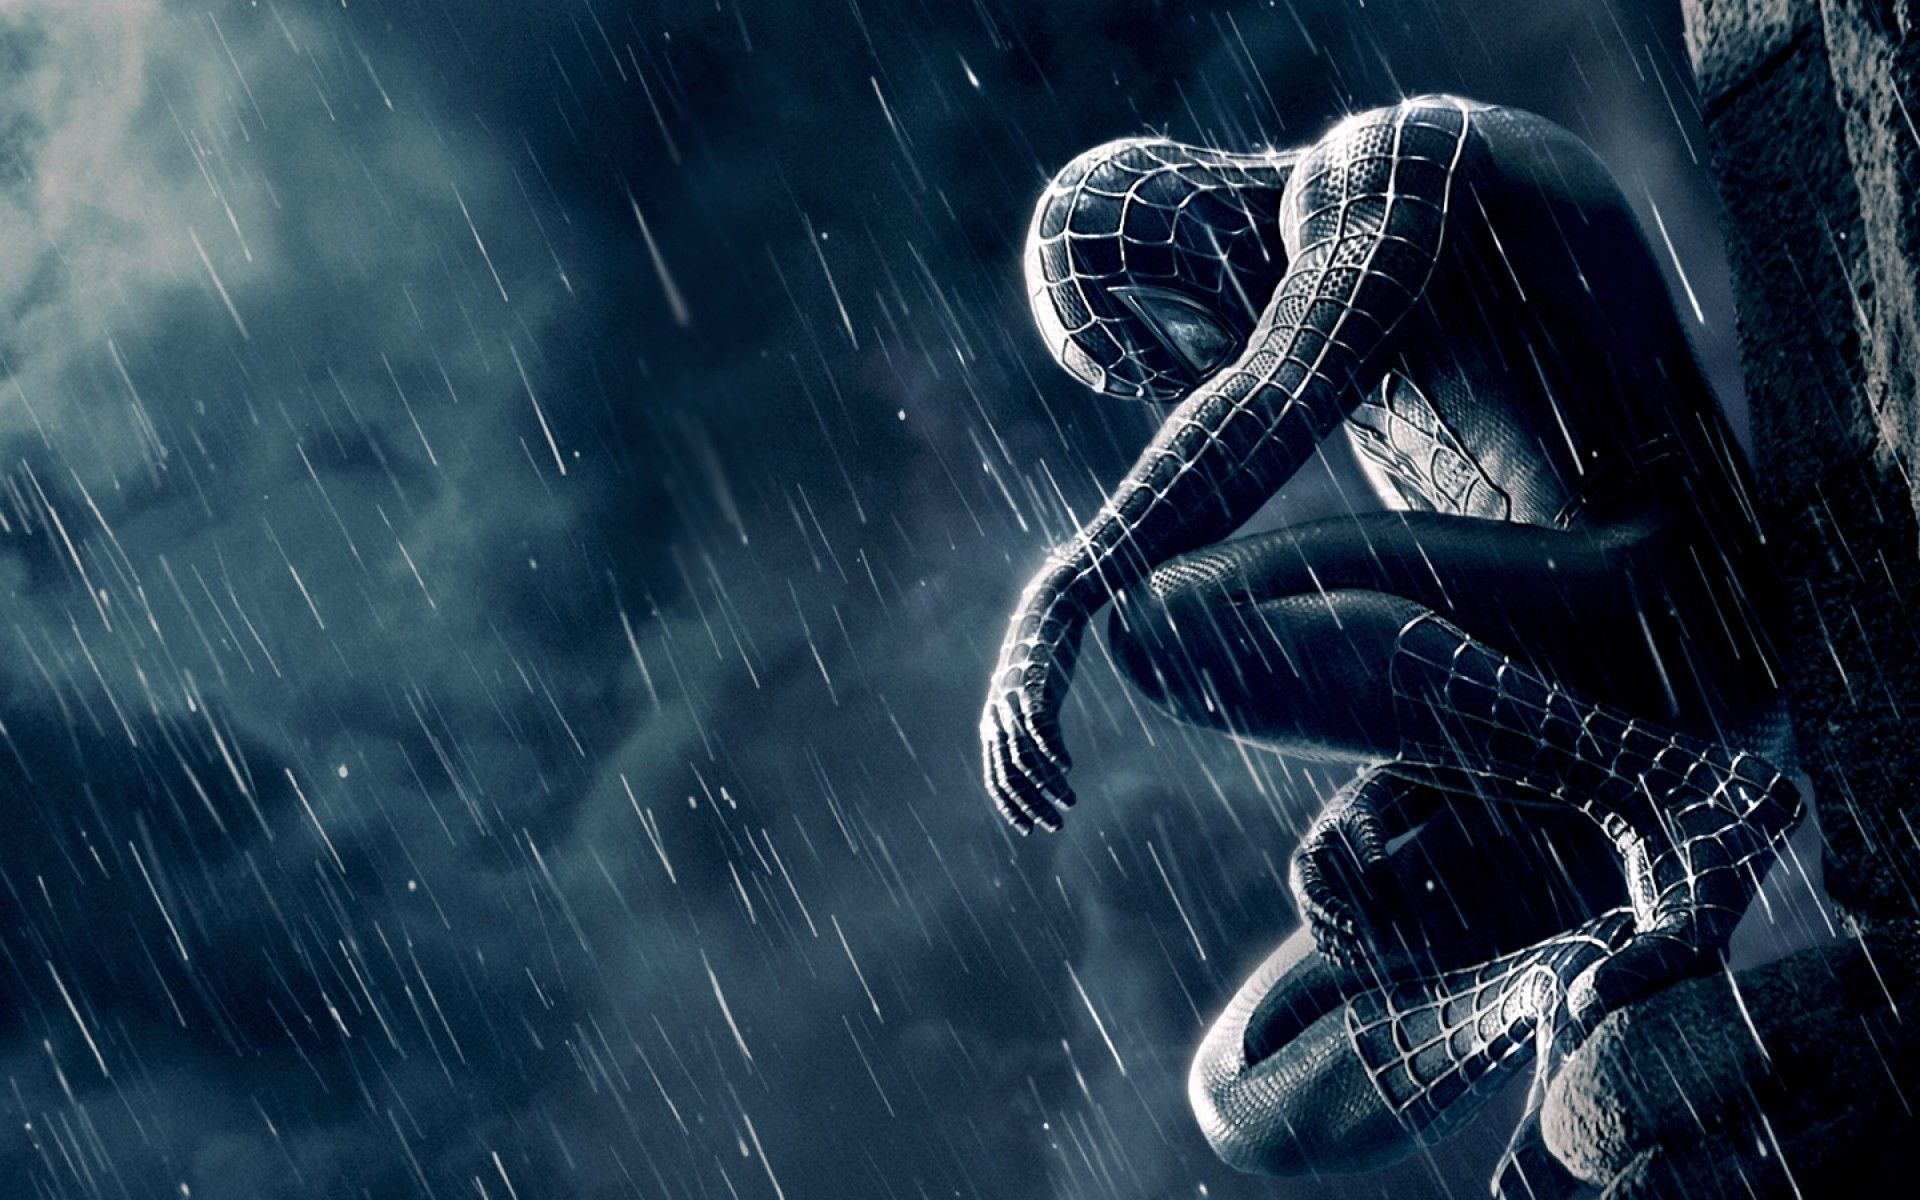 Pin By Hasan On Marvel Heros Spiderman Pictures Spiderman Spiderman 3 Wallpaper